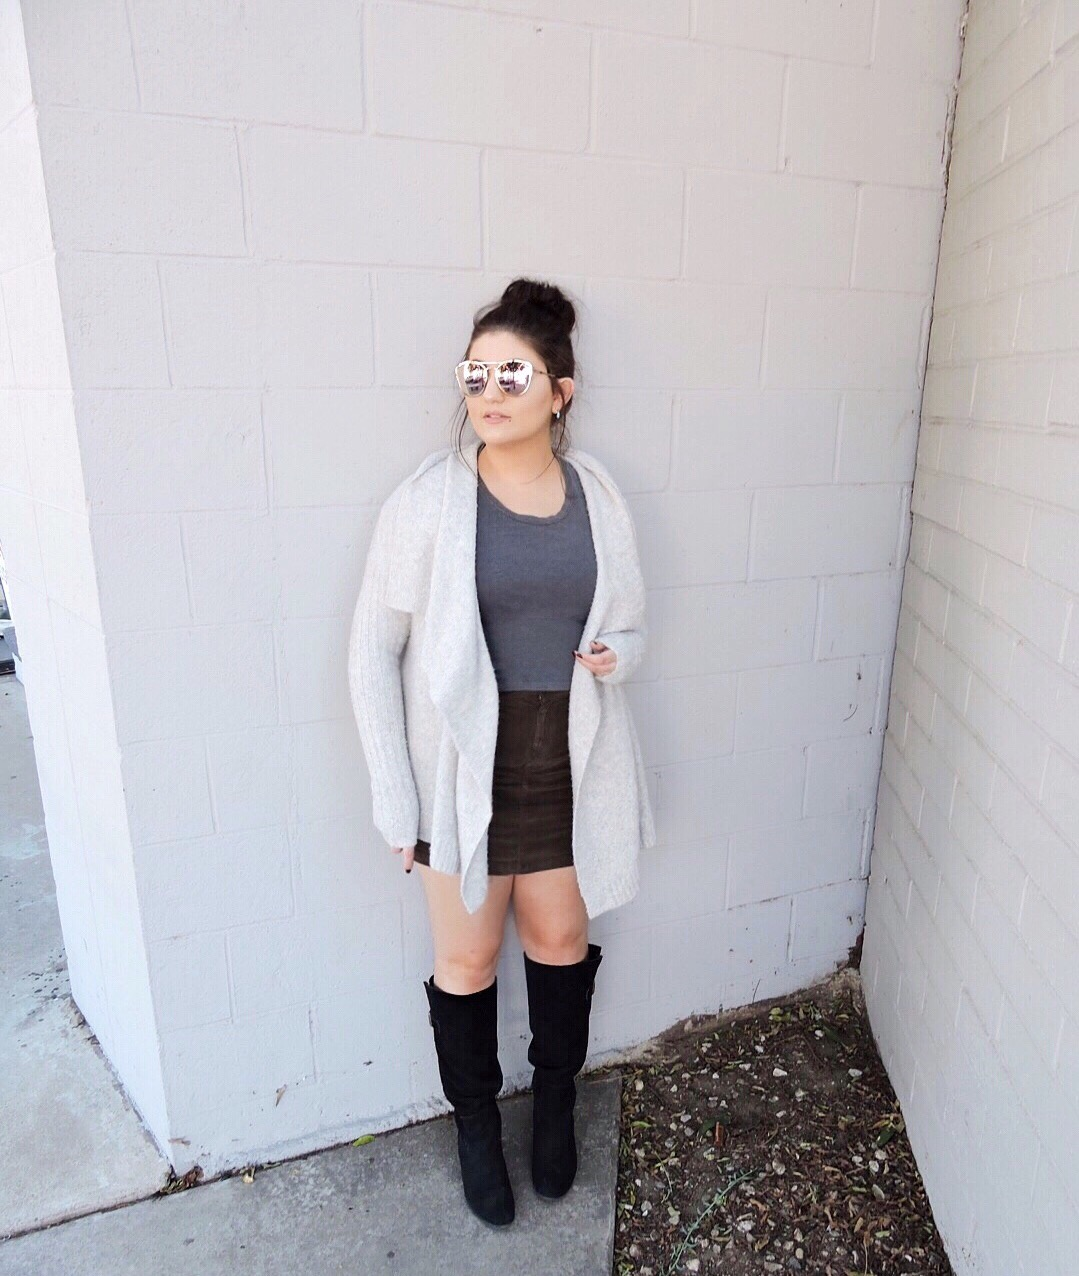 steve madden urban outfitters quay Australia sugarly la jolla grey neutrals abercrombie gap fall cozy